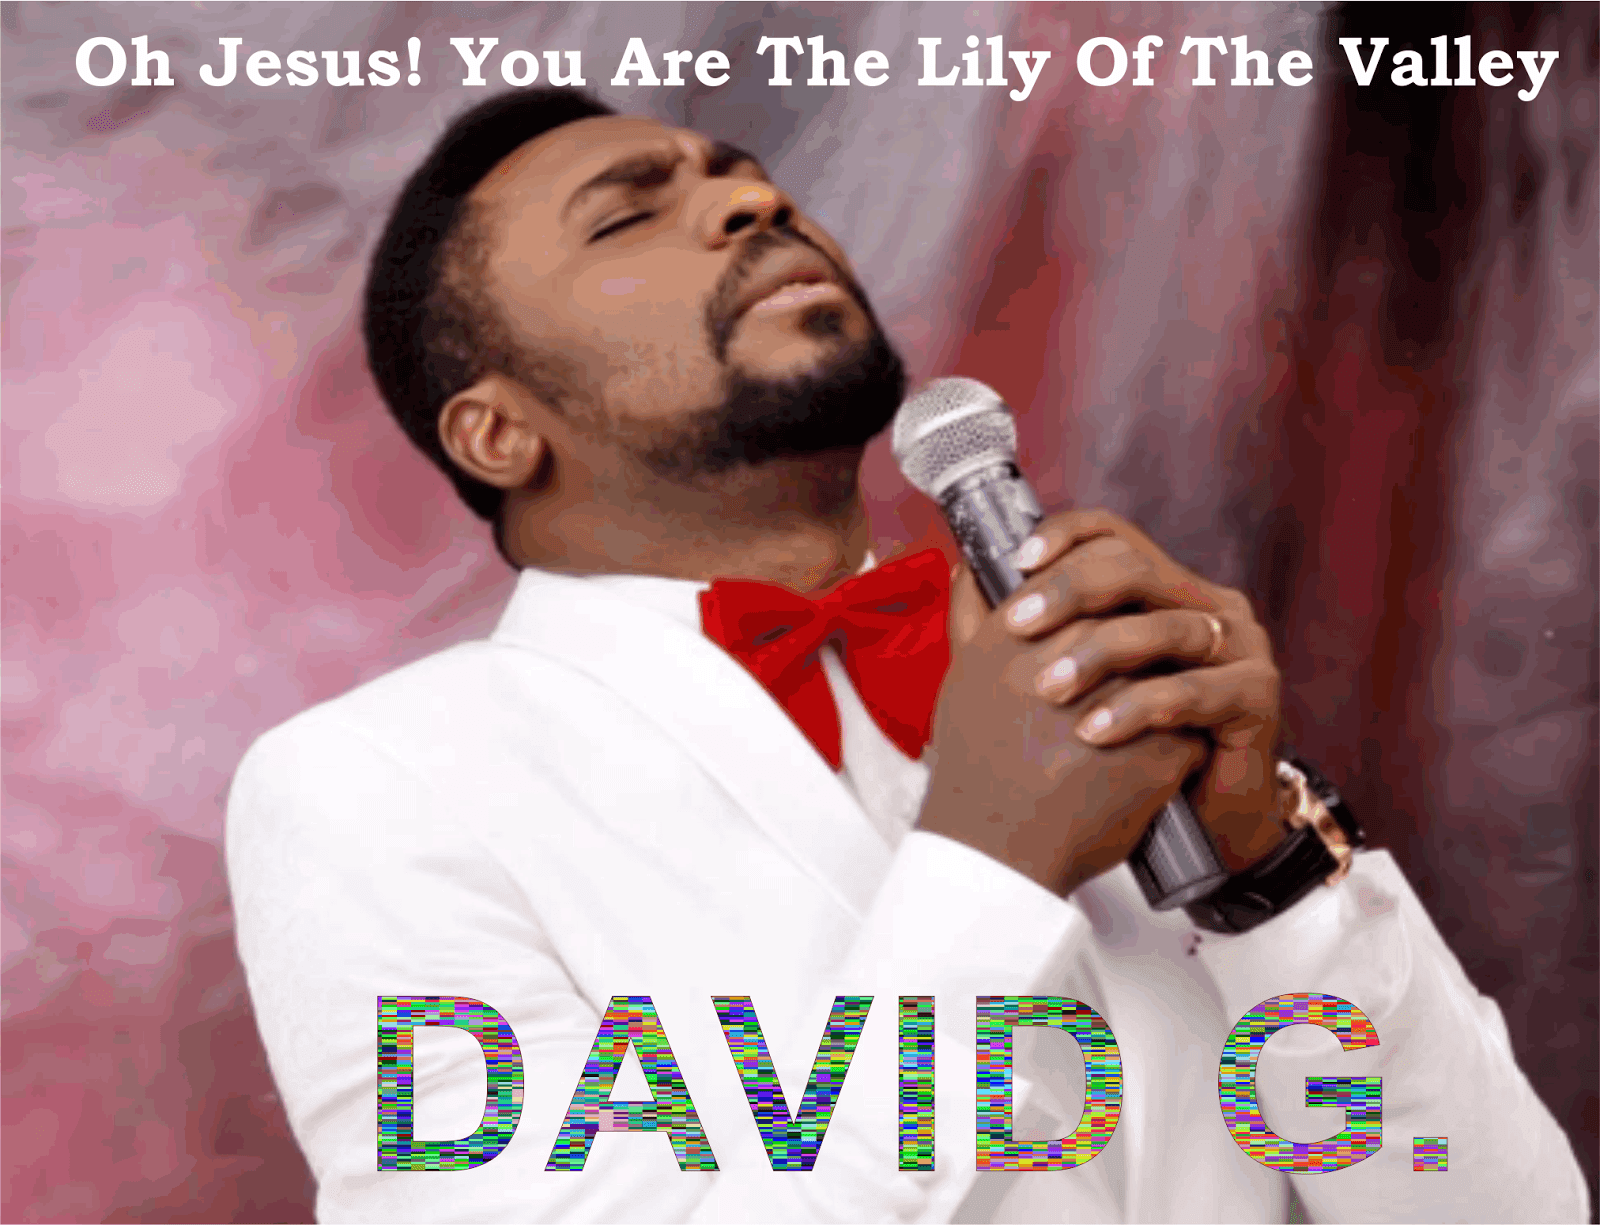 Oh Jesus! You're the lily of the valley by David G (Lyrics)